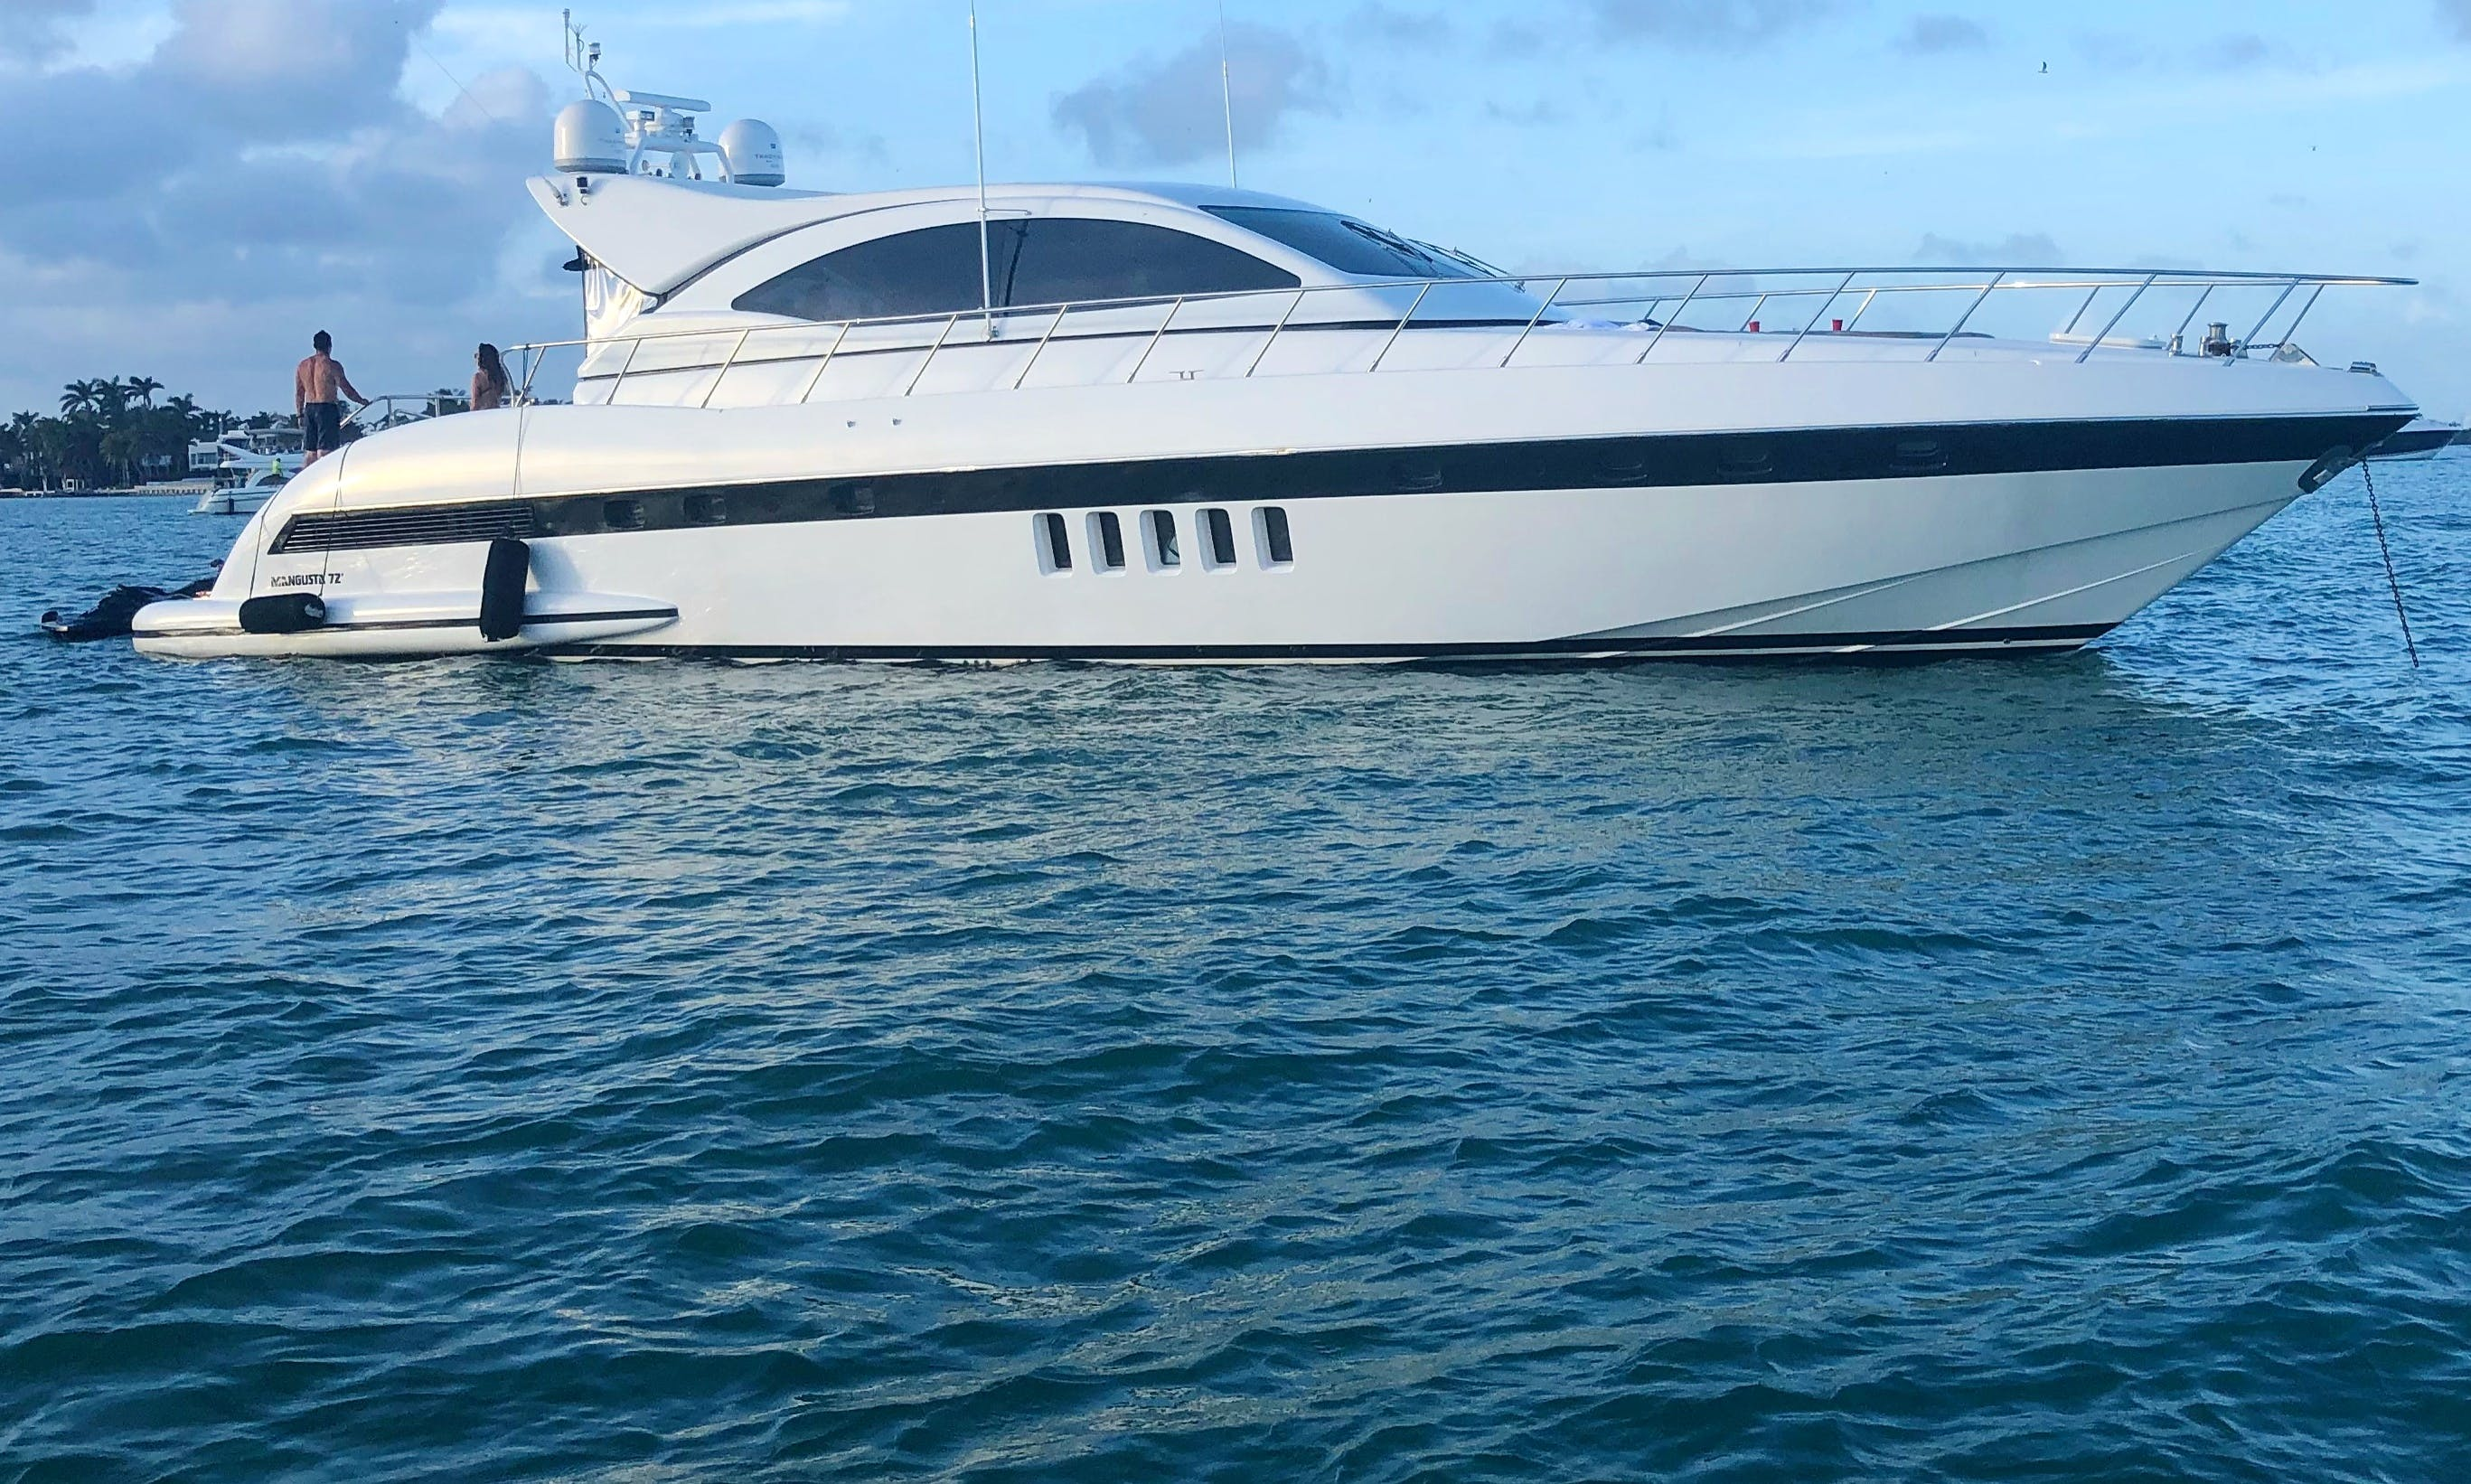 72' Mangusta YCM. Exclusive Opportunity to Charter a Celebrities Luxury Yacht.